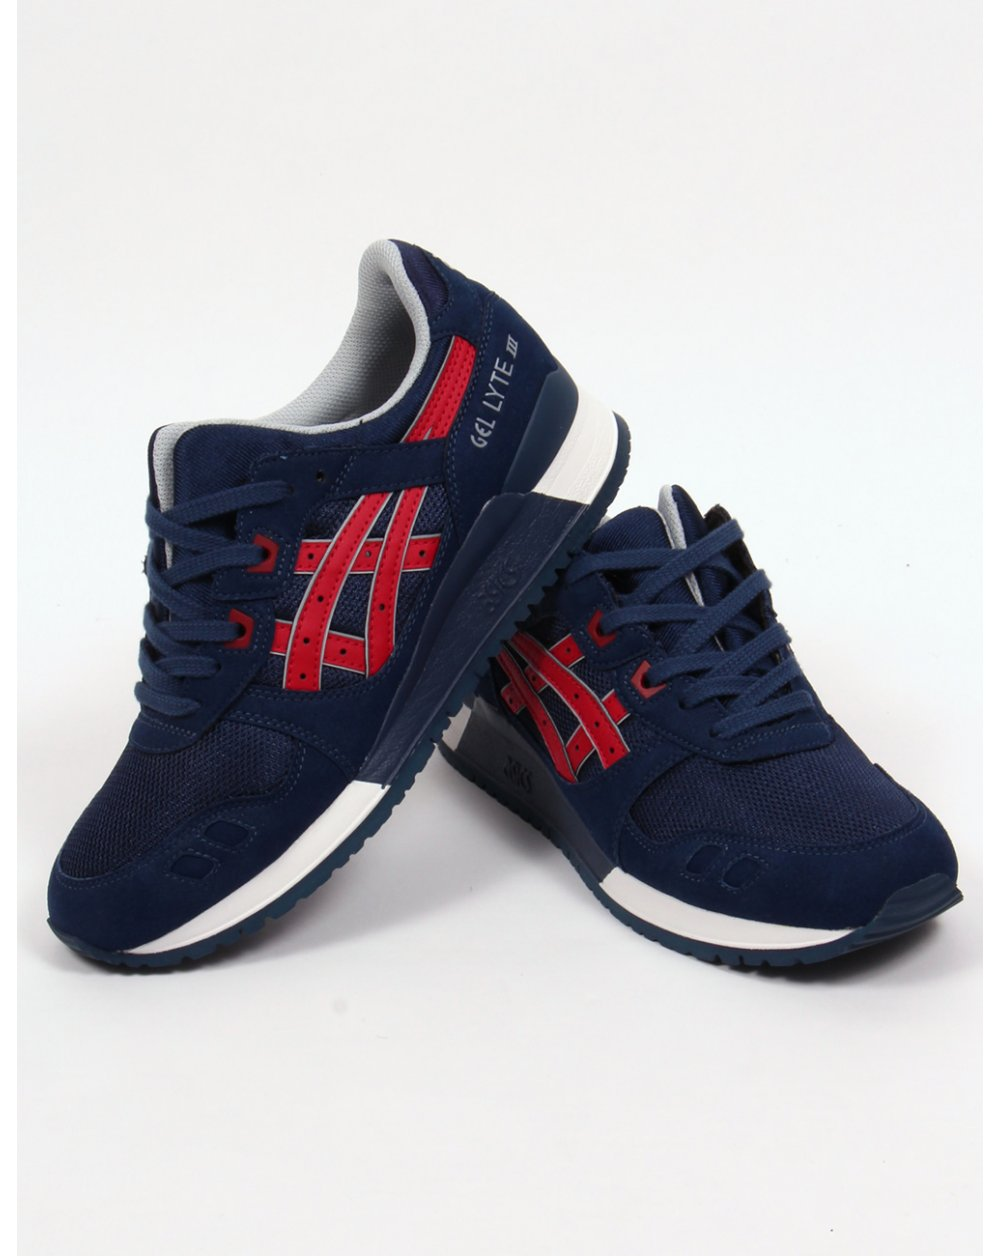 Asics Gel Lyte III Trainers Navy/Red,3,shoes,runners,sneakers